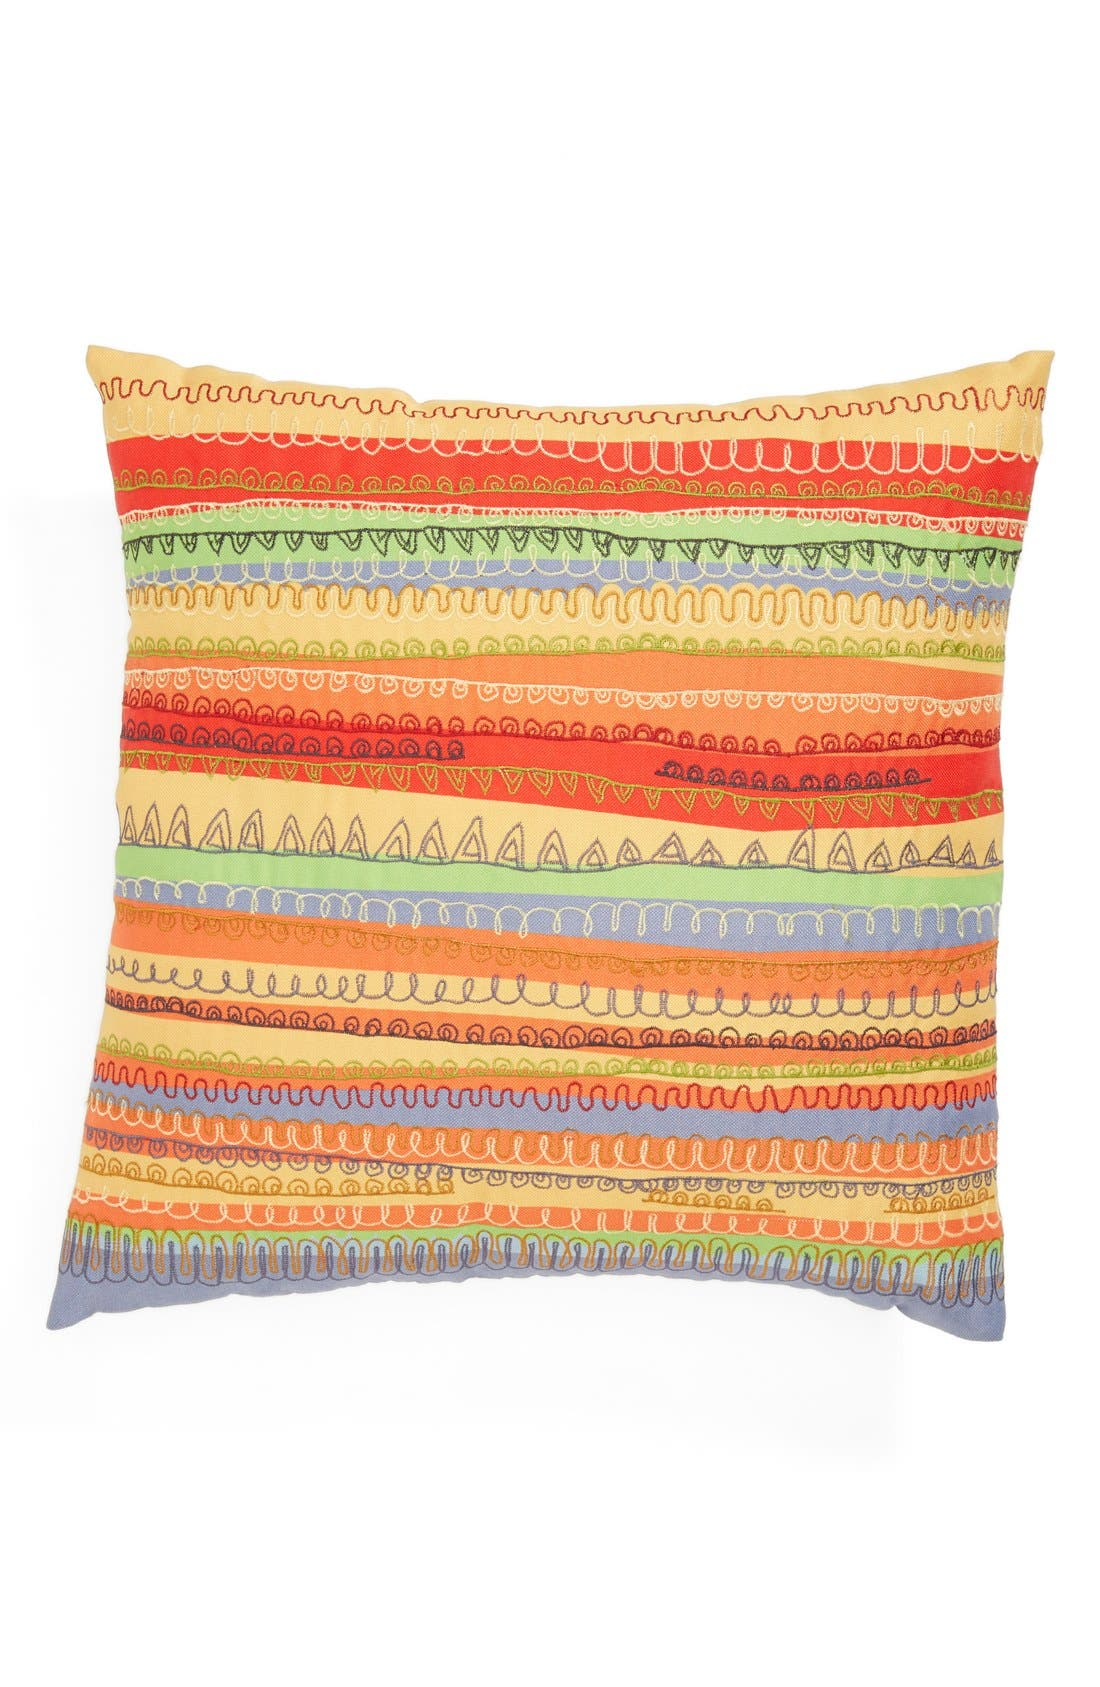 Alternate Image 1 Selected - Mina Victory 'Fiesta' Pillow